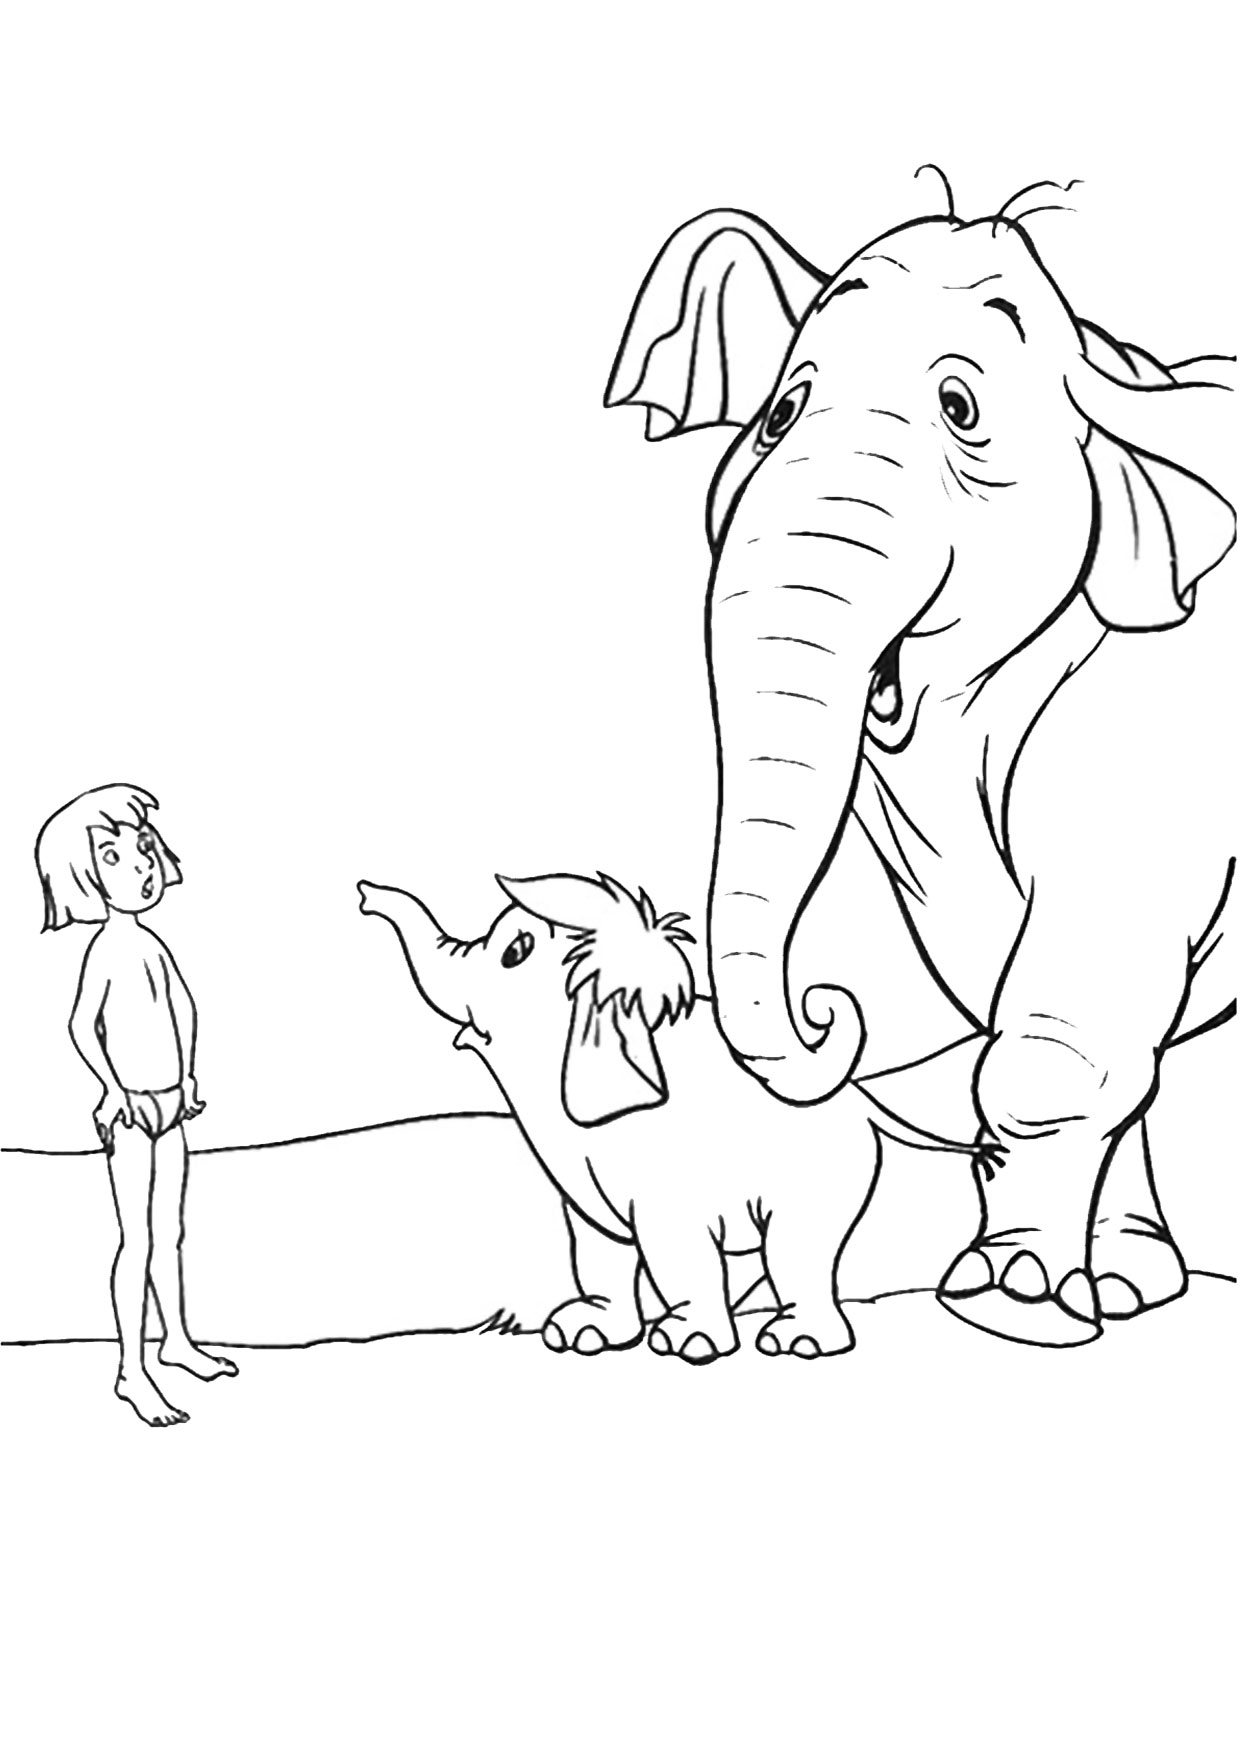 Disegno di Elefante Cartoon da colorare 15